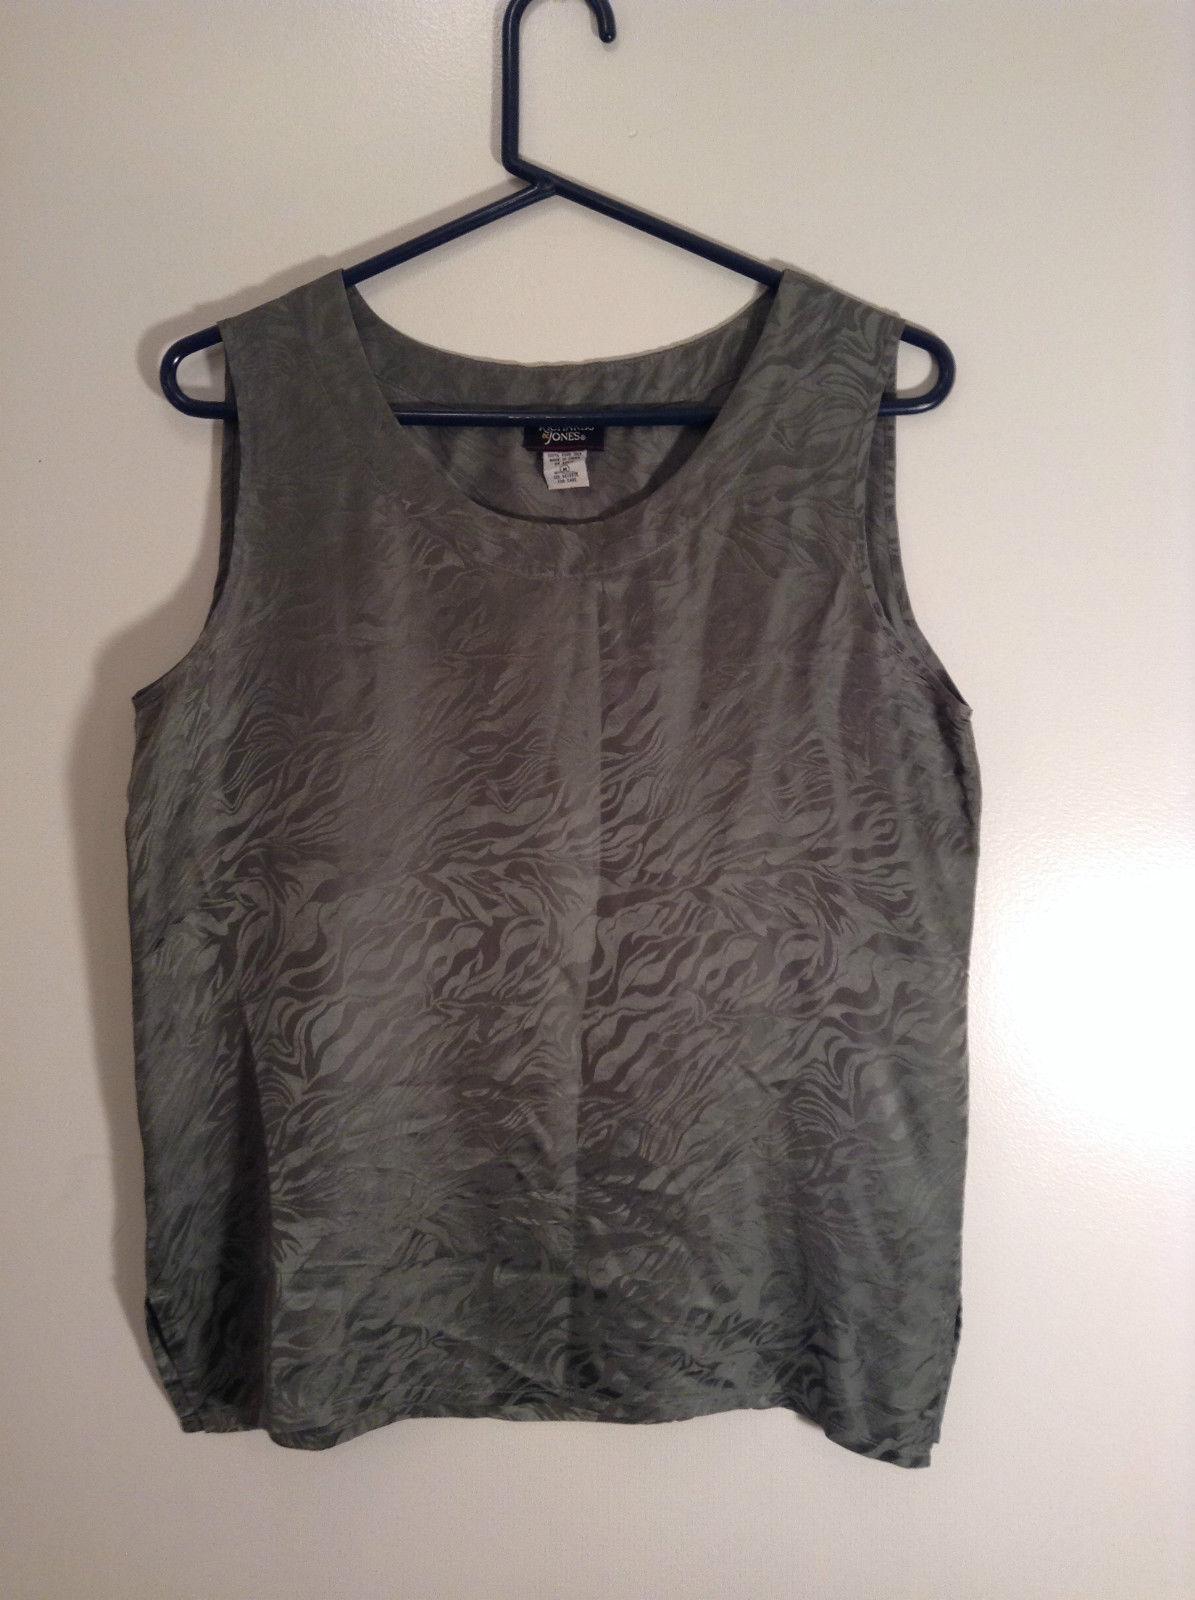 Richard and Jones Light Green Sleeveless 100 Percent Silk Top Size Medium